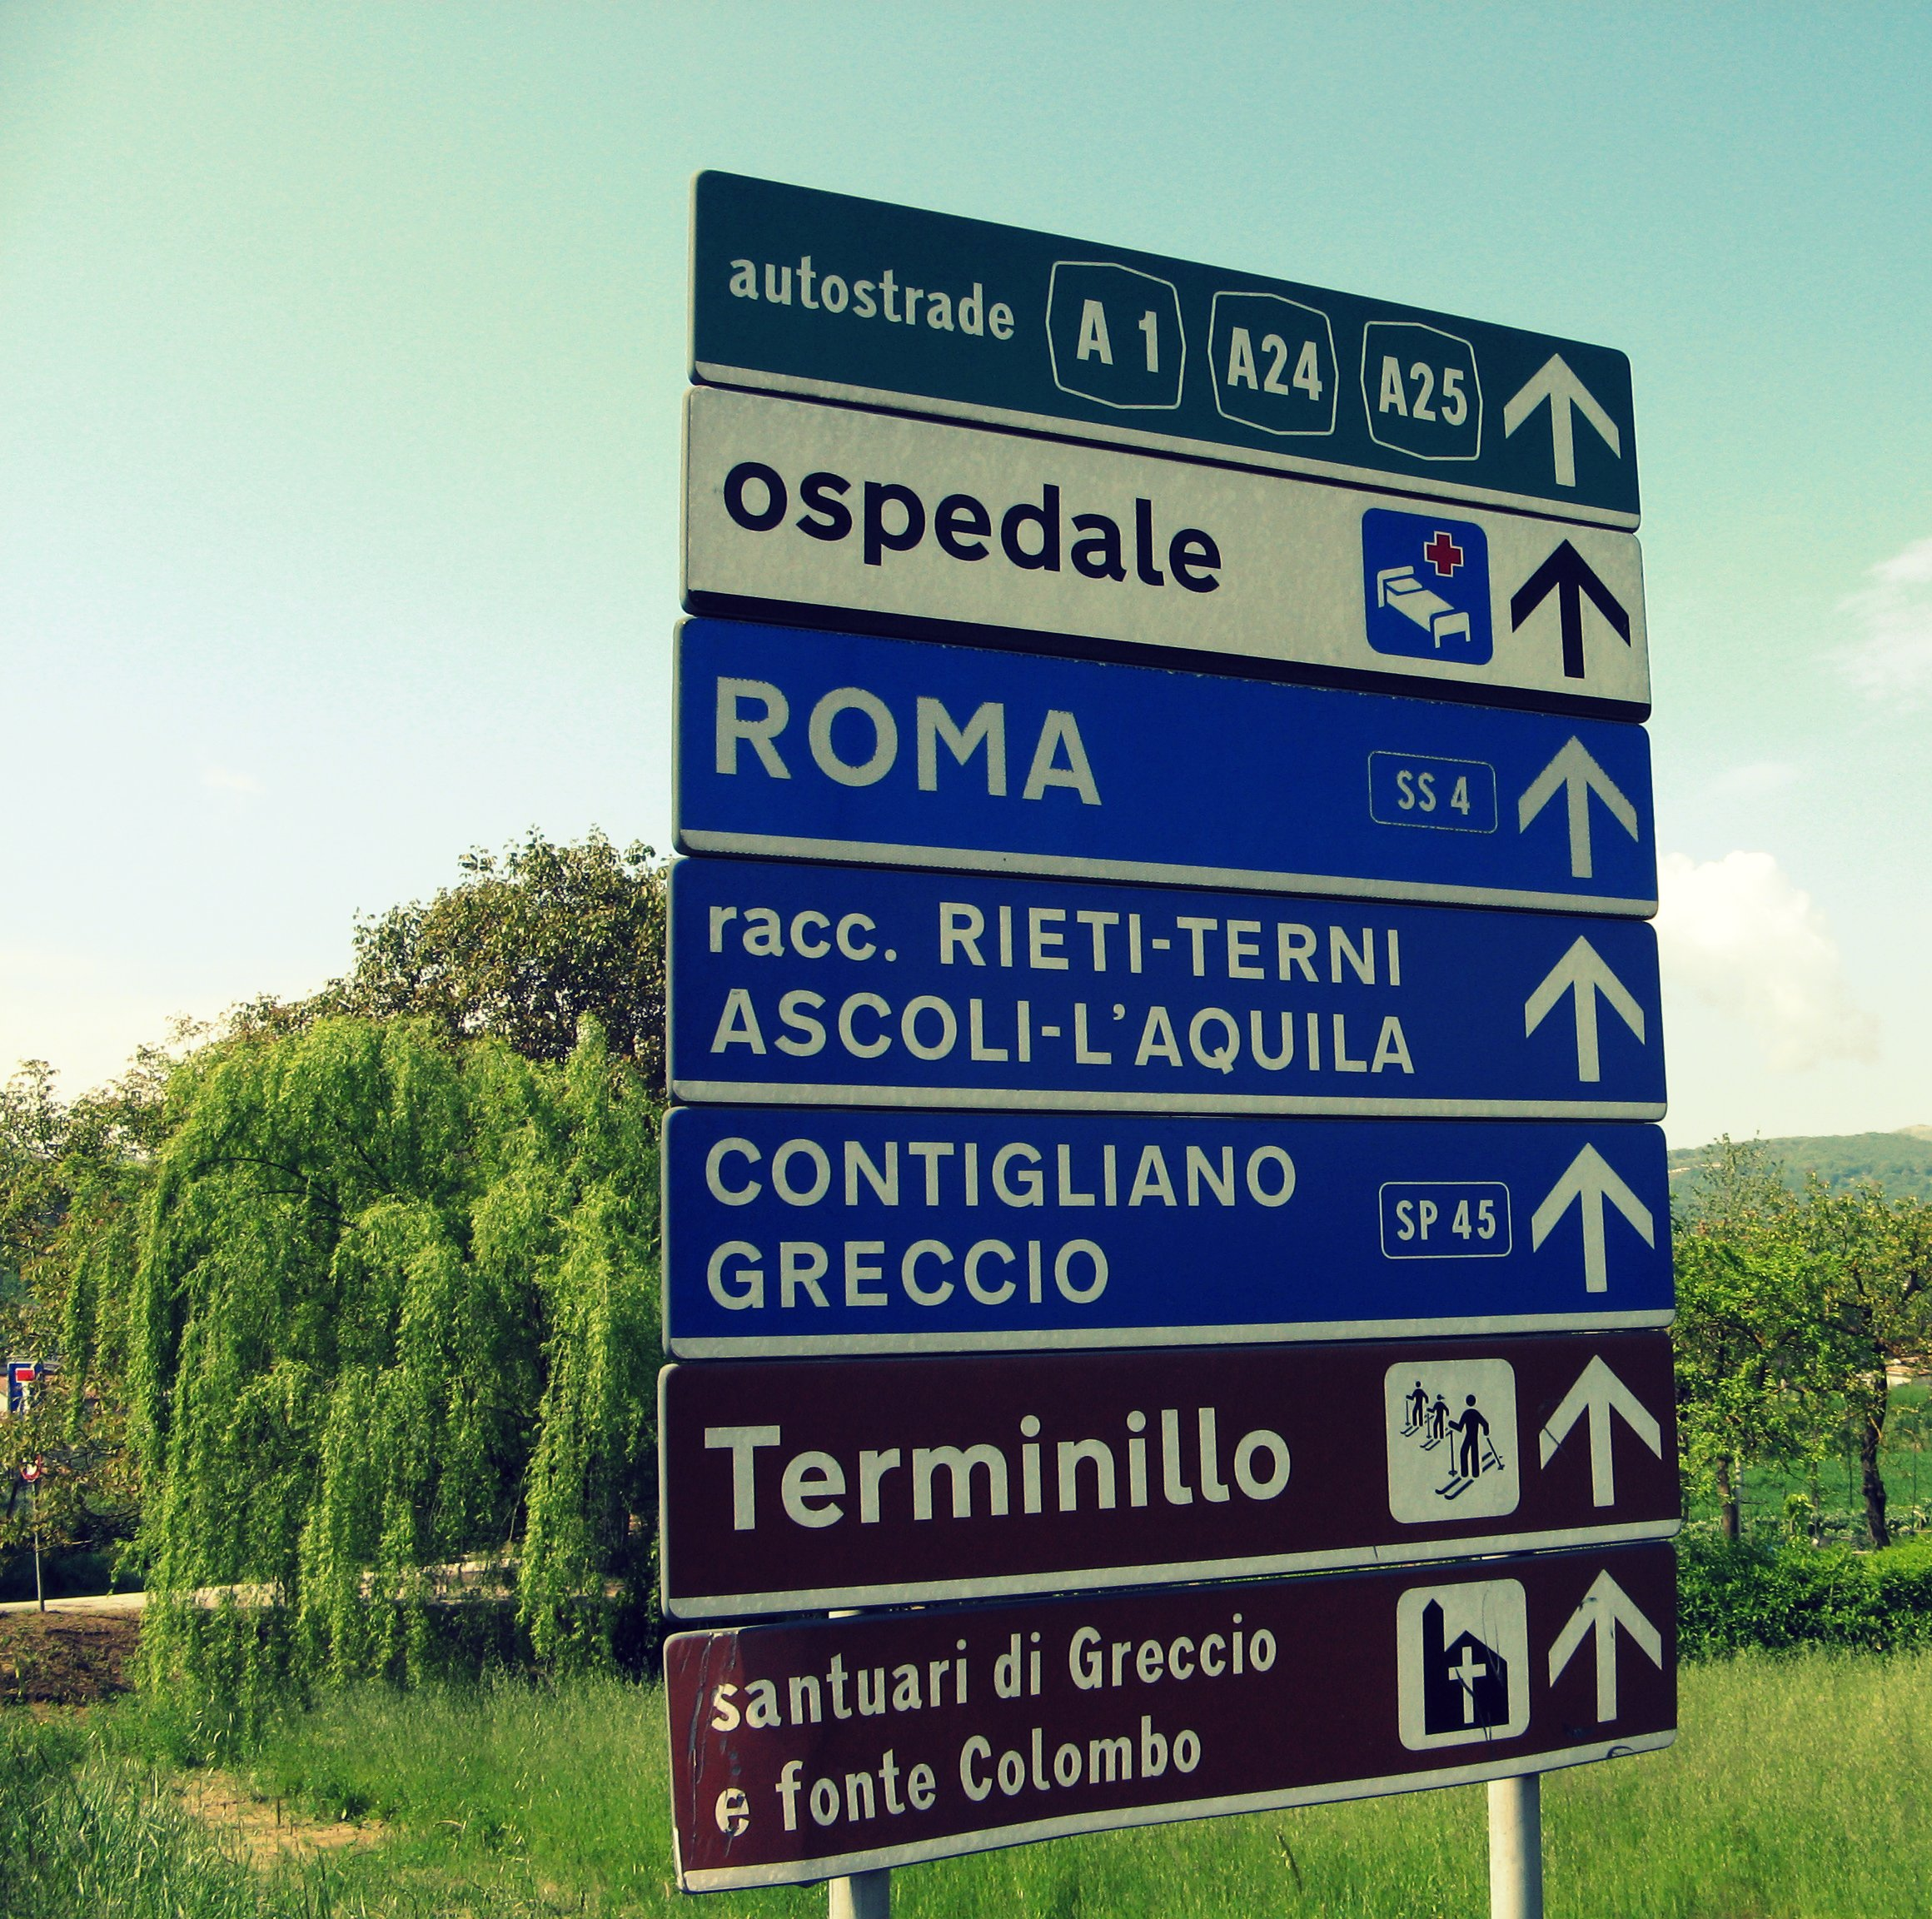 Road signs in Italy.